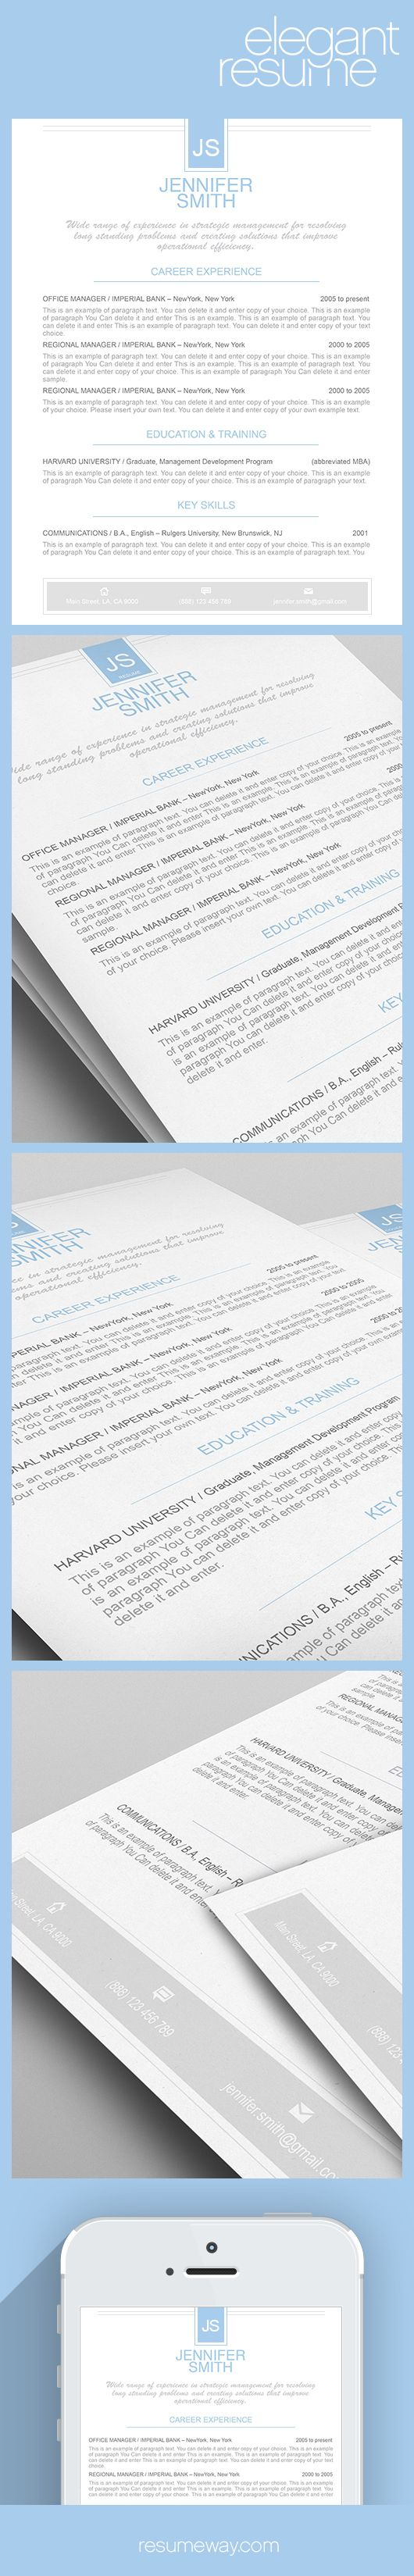 Resume Templates Apple Progressiverailus Terrific Resume Examples